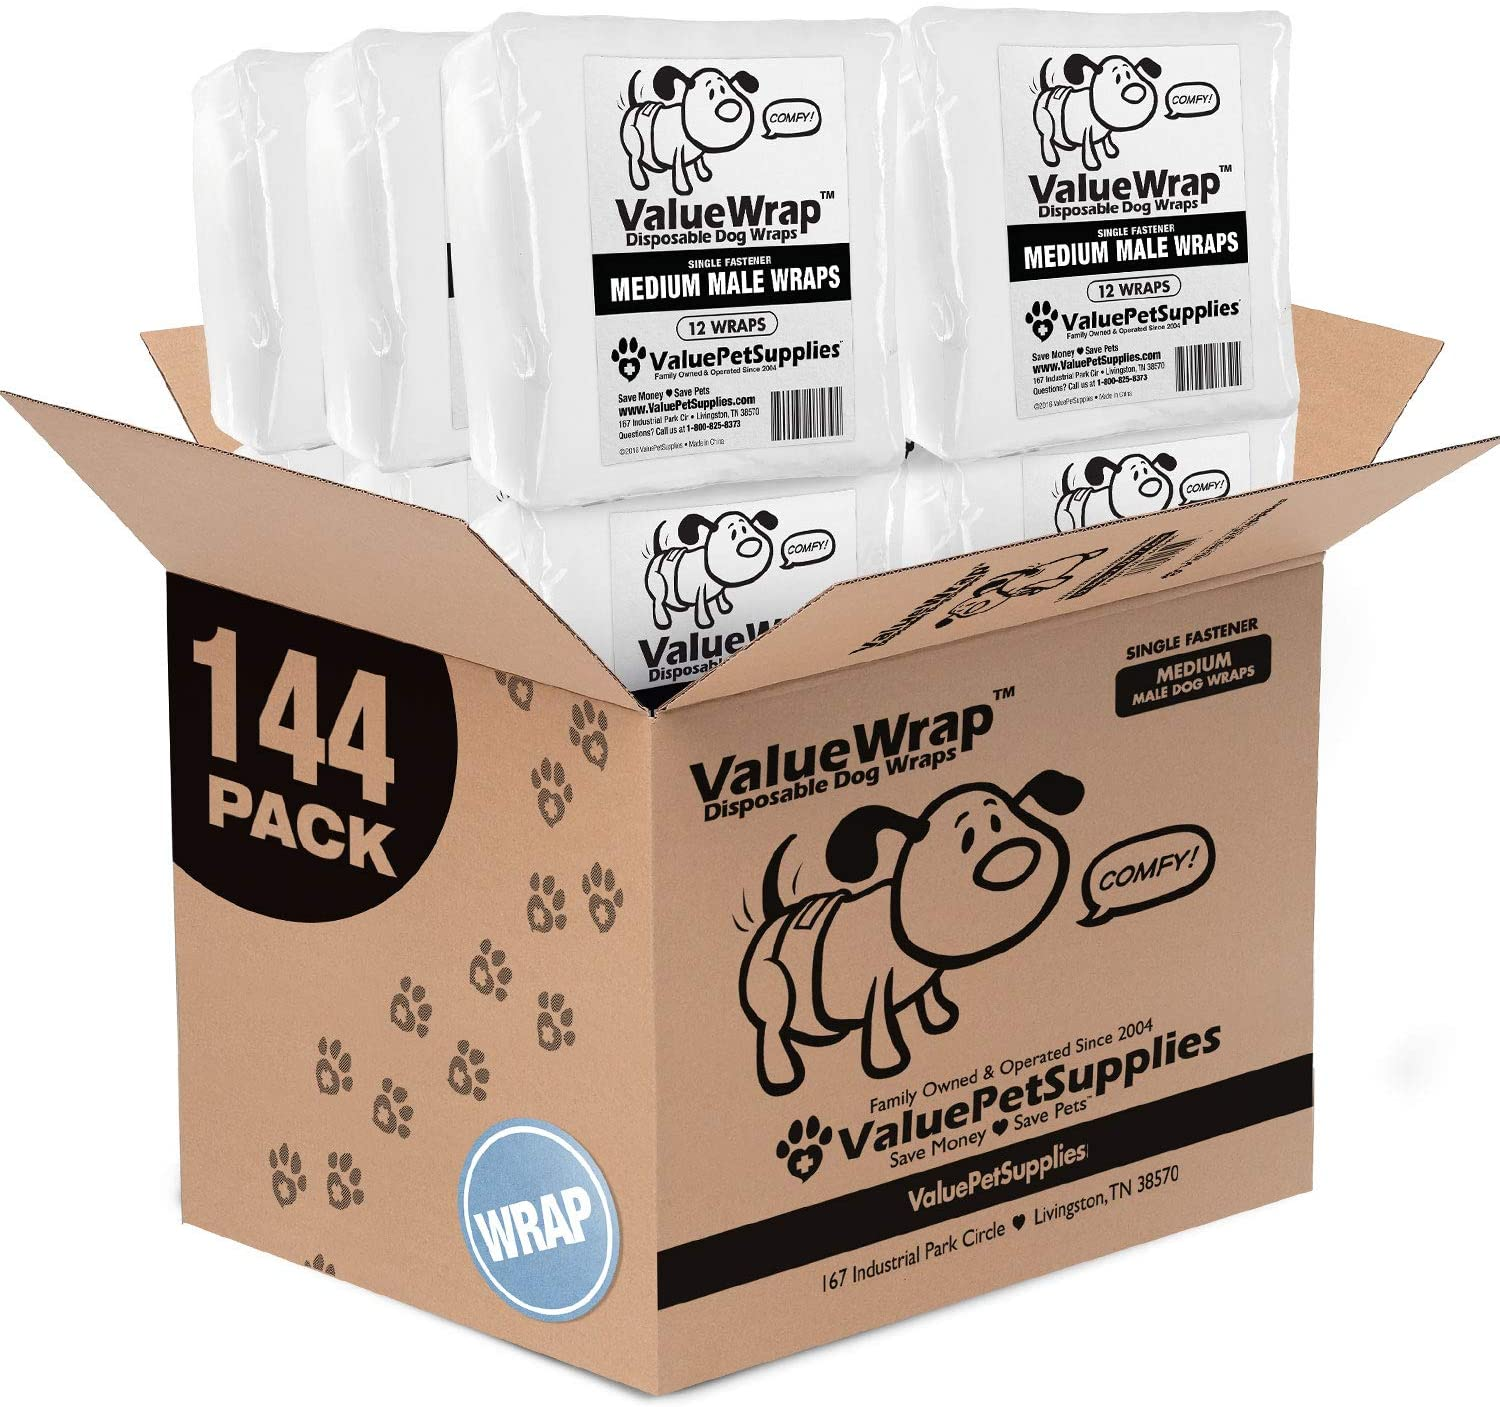 ValueWrap Disposable Male Dog Diapers, 1-Tab, 144 Count - Male Wraps, Snag-Free Fastener, Leak Protection, Wetness Indicator